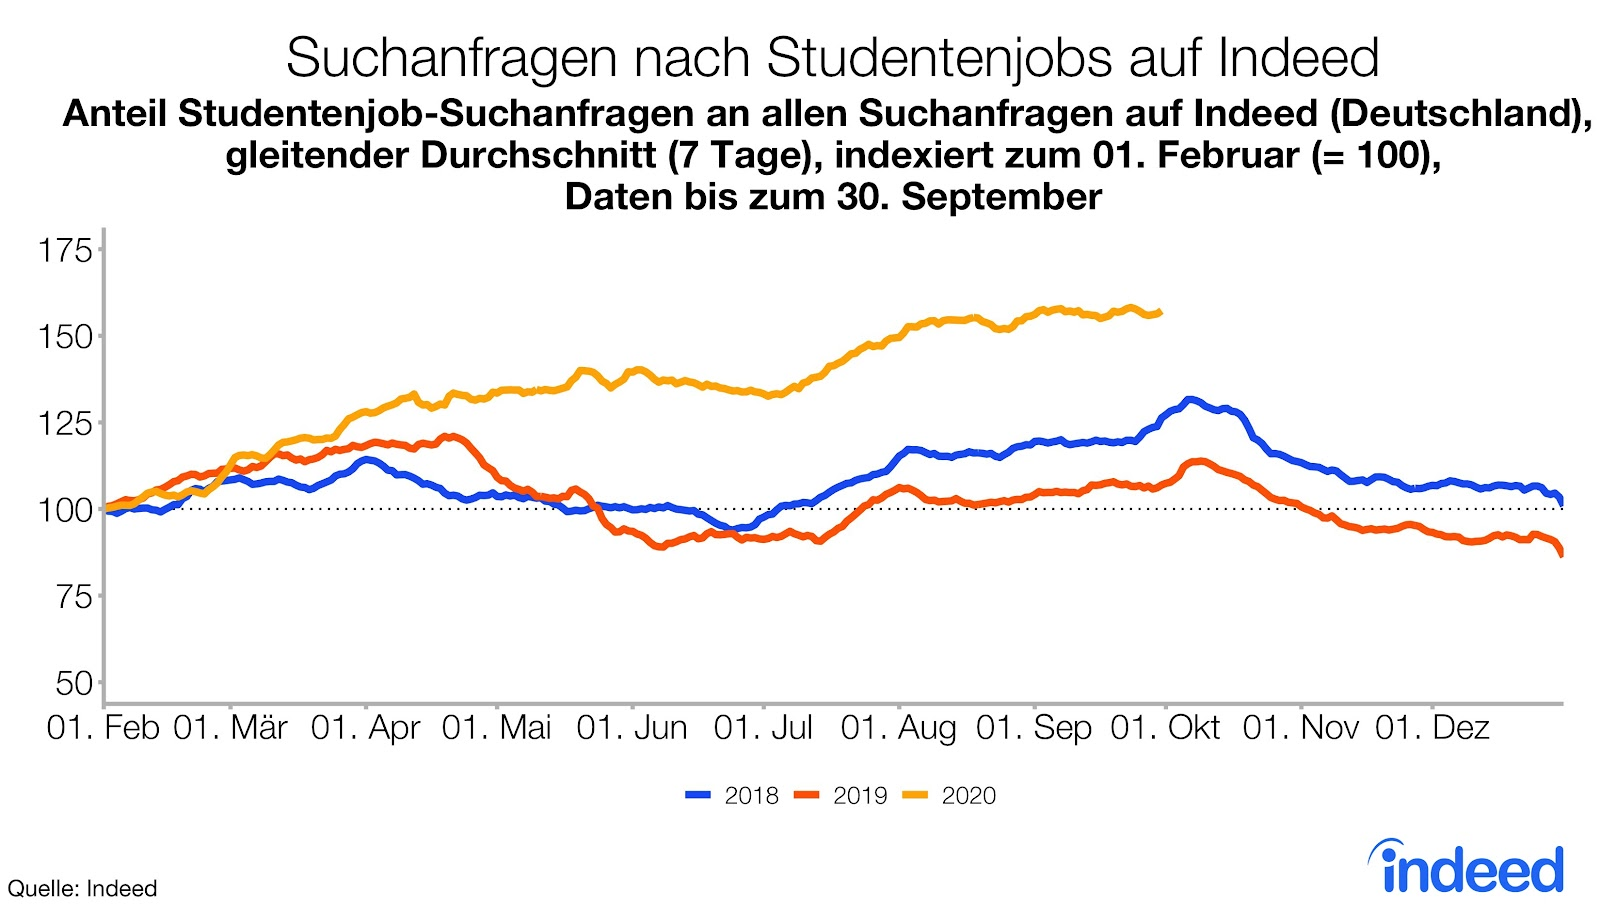 Suchanfragen nach Studentenjobs auf Indeed